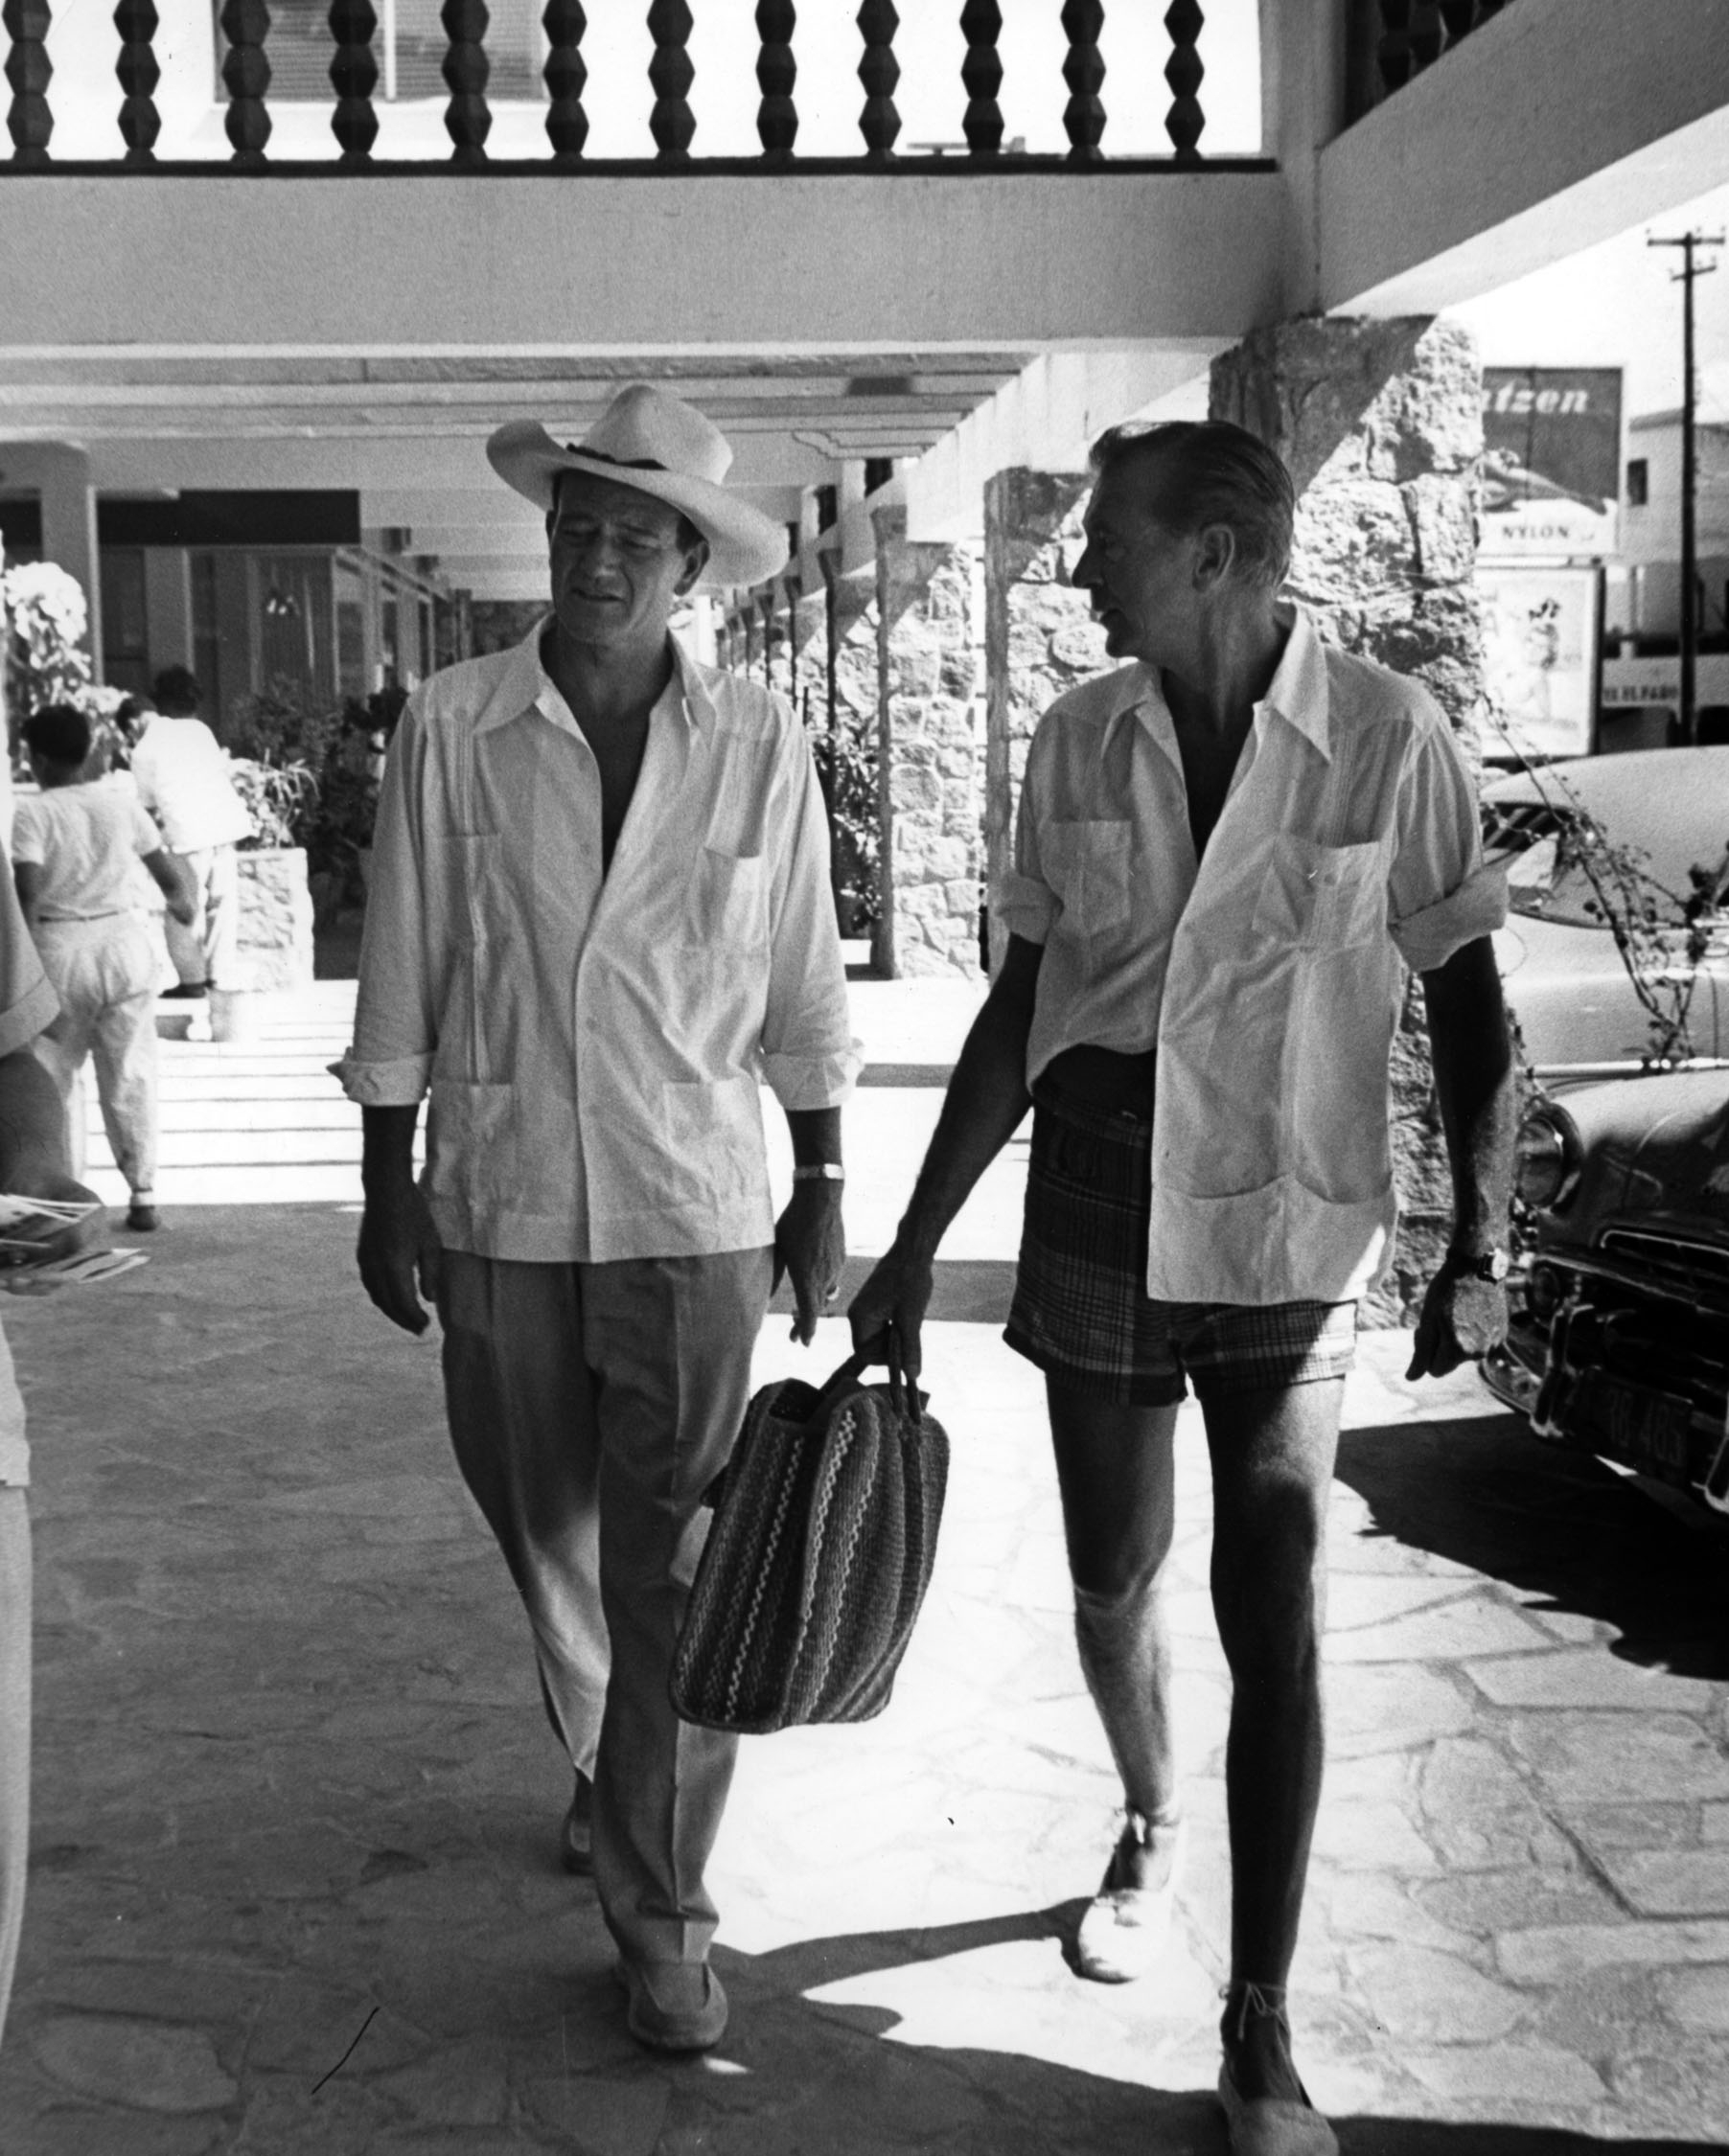 John Wayne and Gary Cooper in Acapulco, 1953.